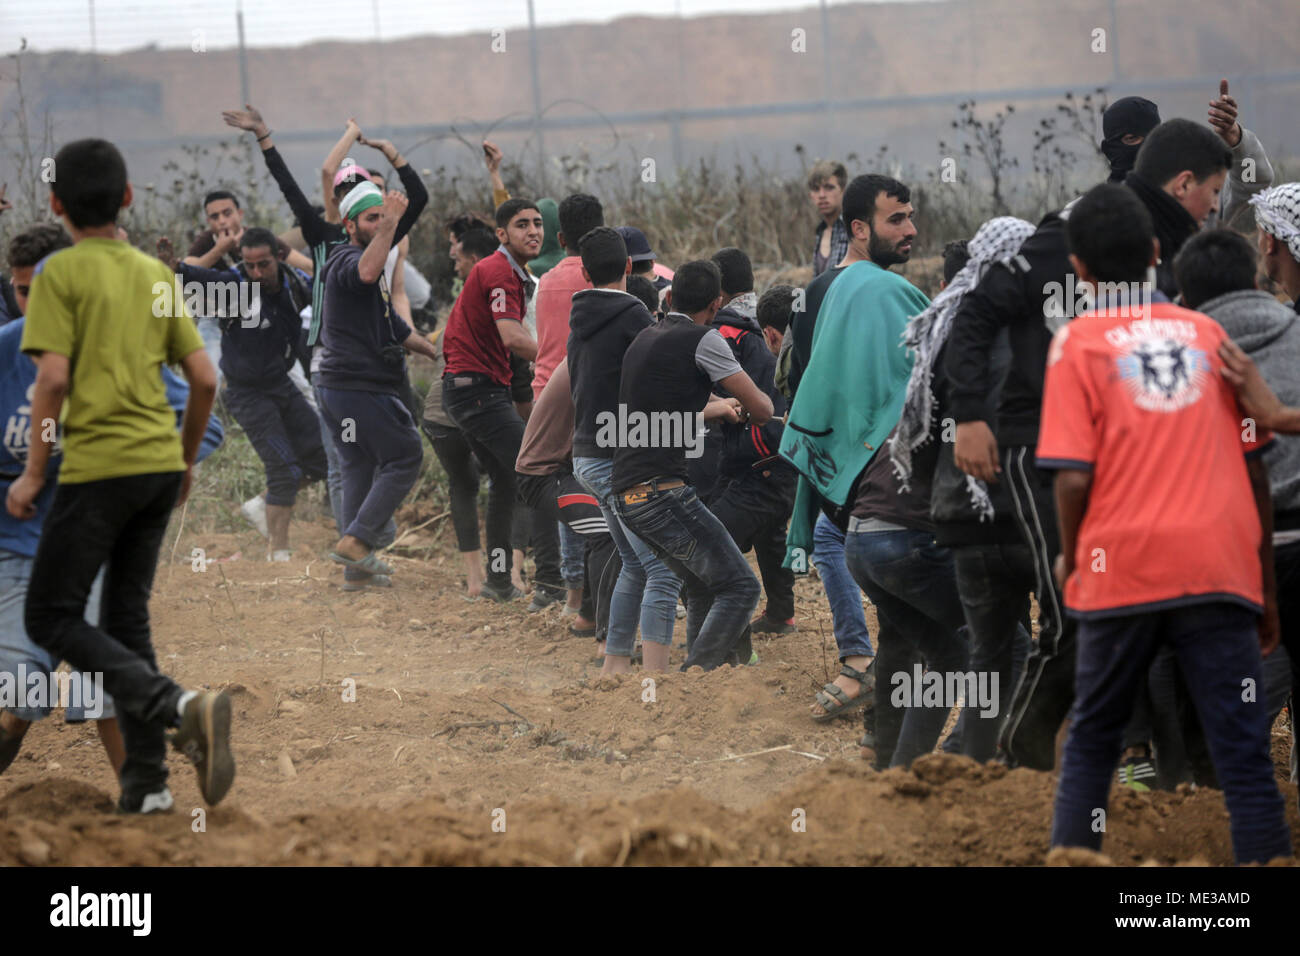 Jabalya, Gaza. 20th Apr, 2018. A Palestinian protester pull part of ...